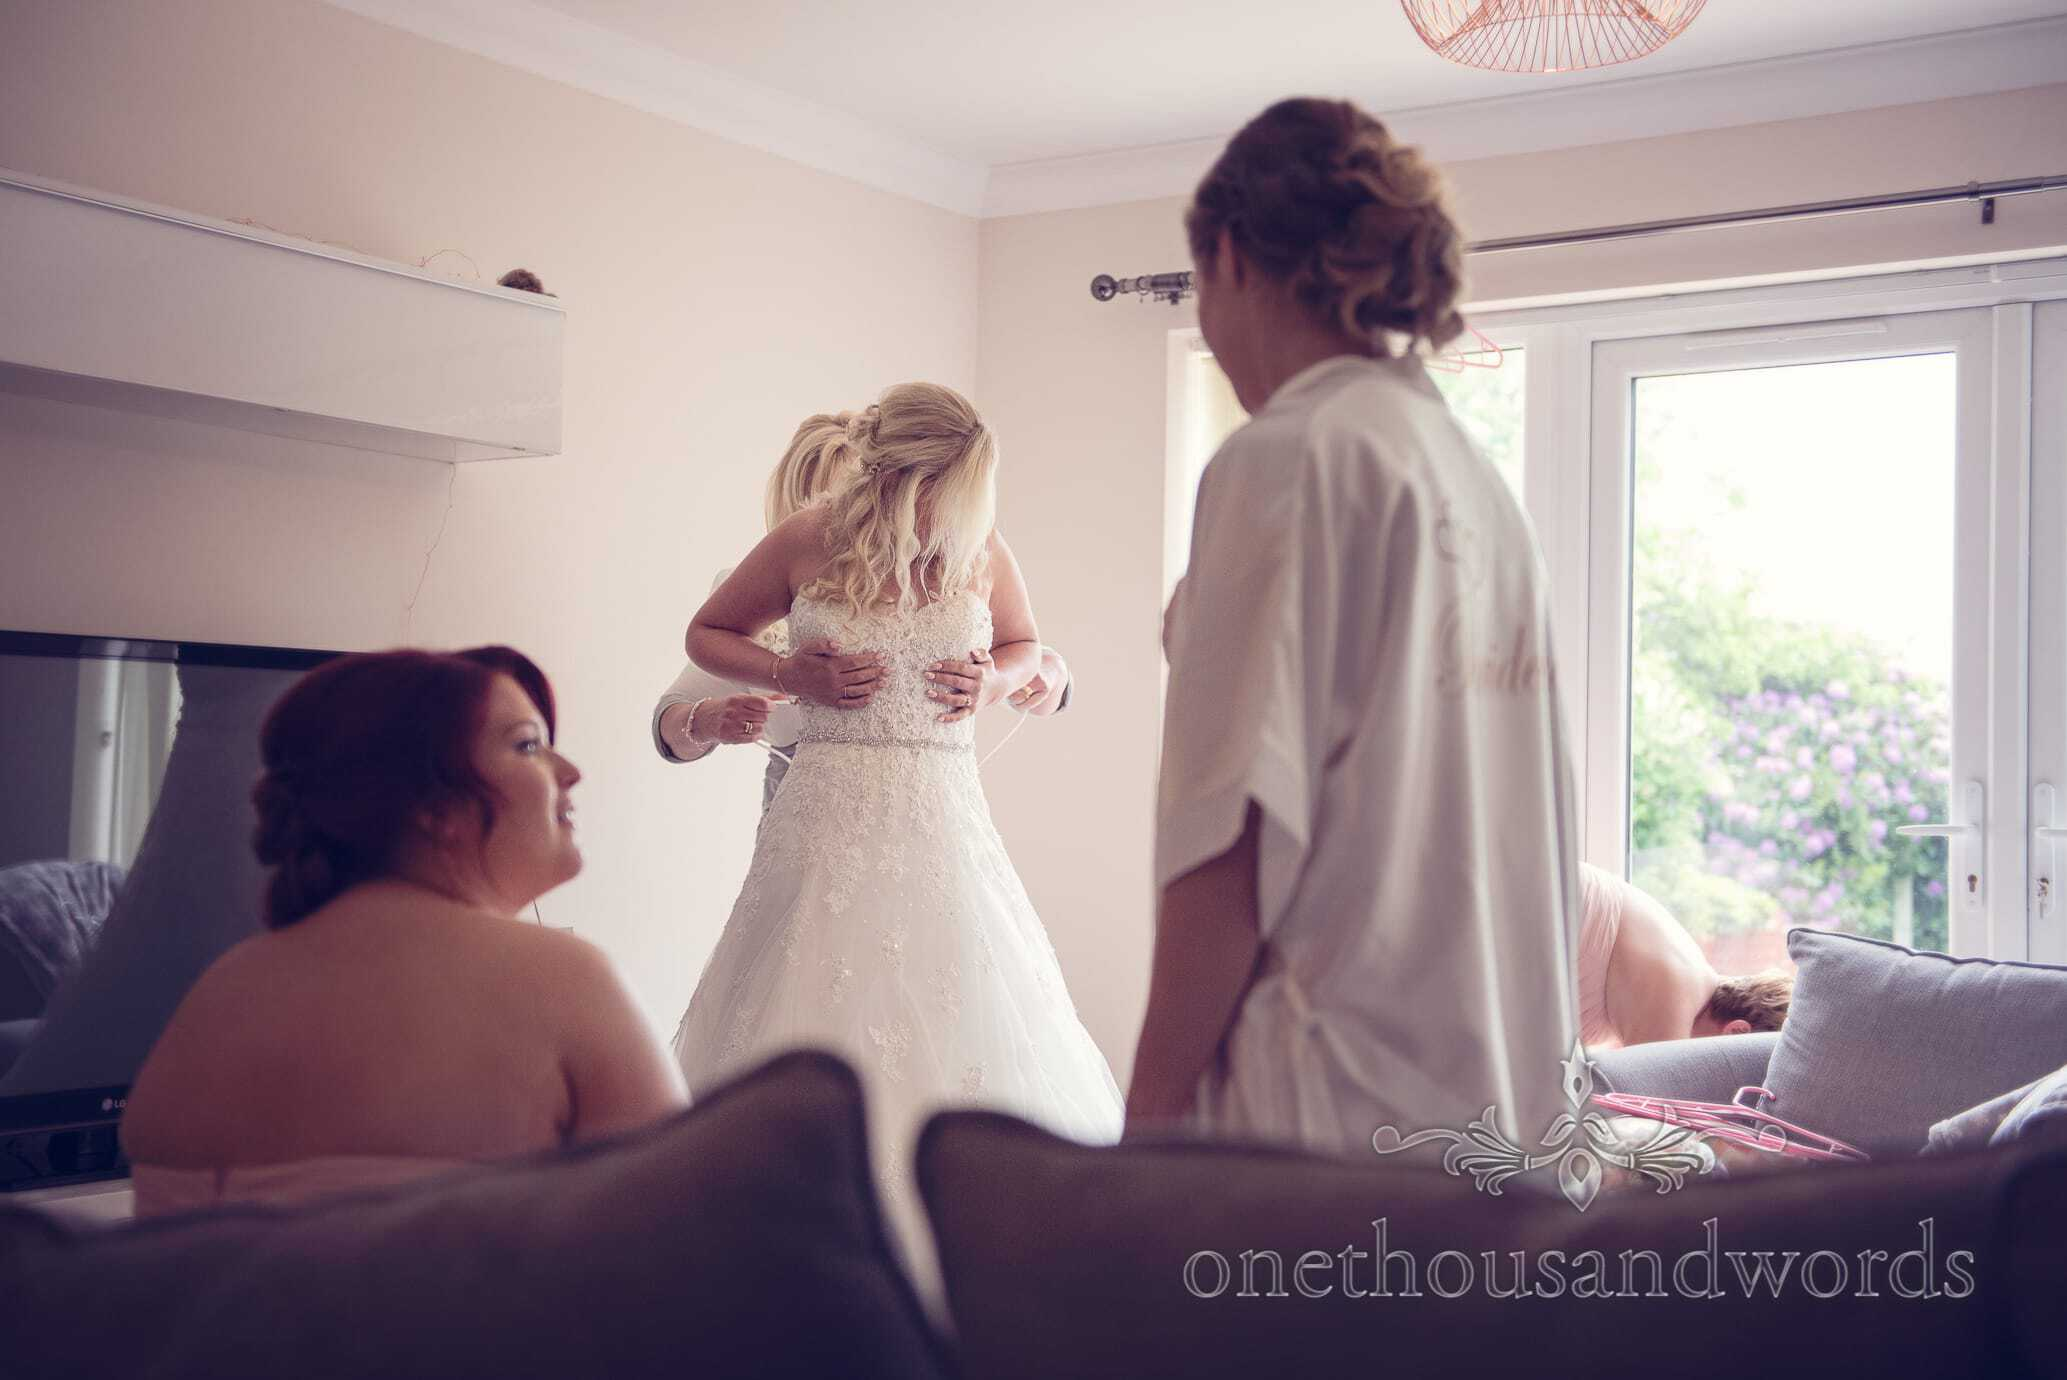 Bridesmaids watch bride being laced into wedding dress on wedding morning